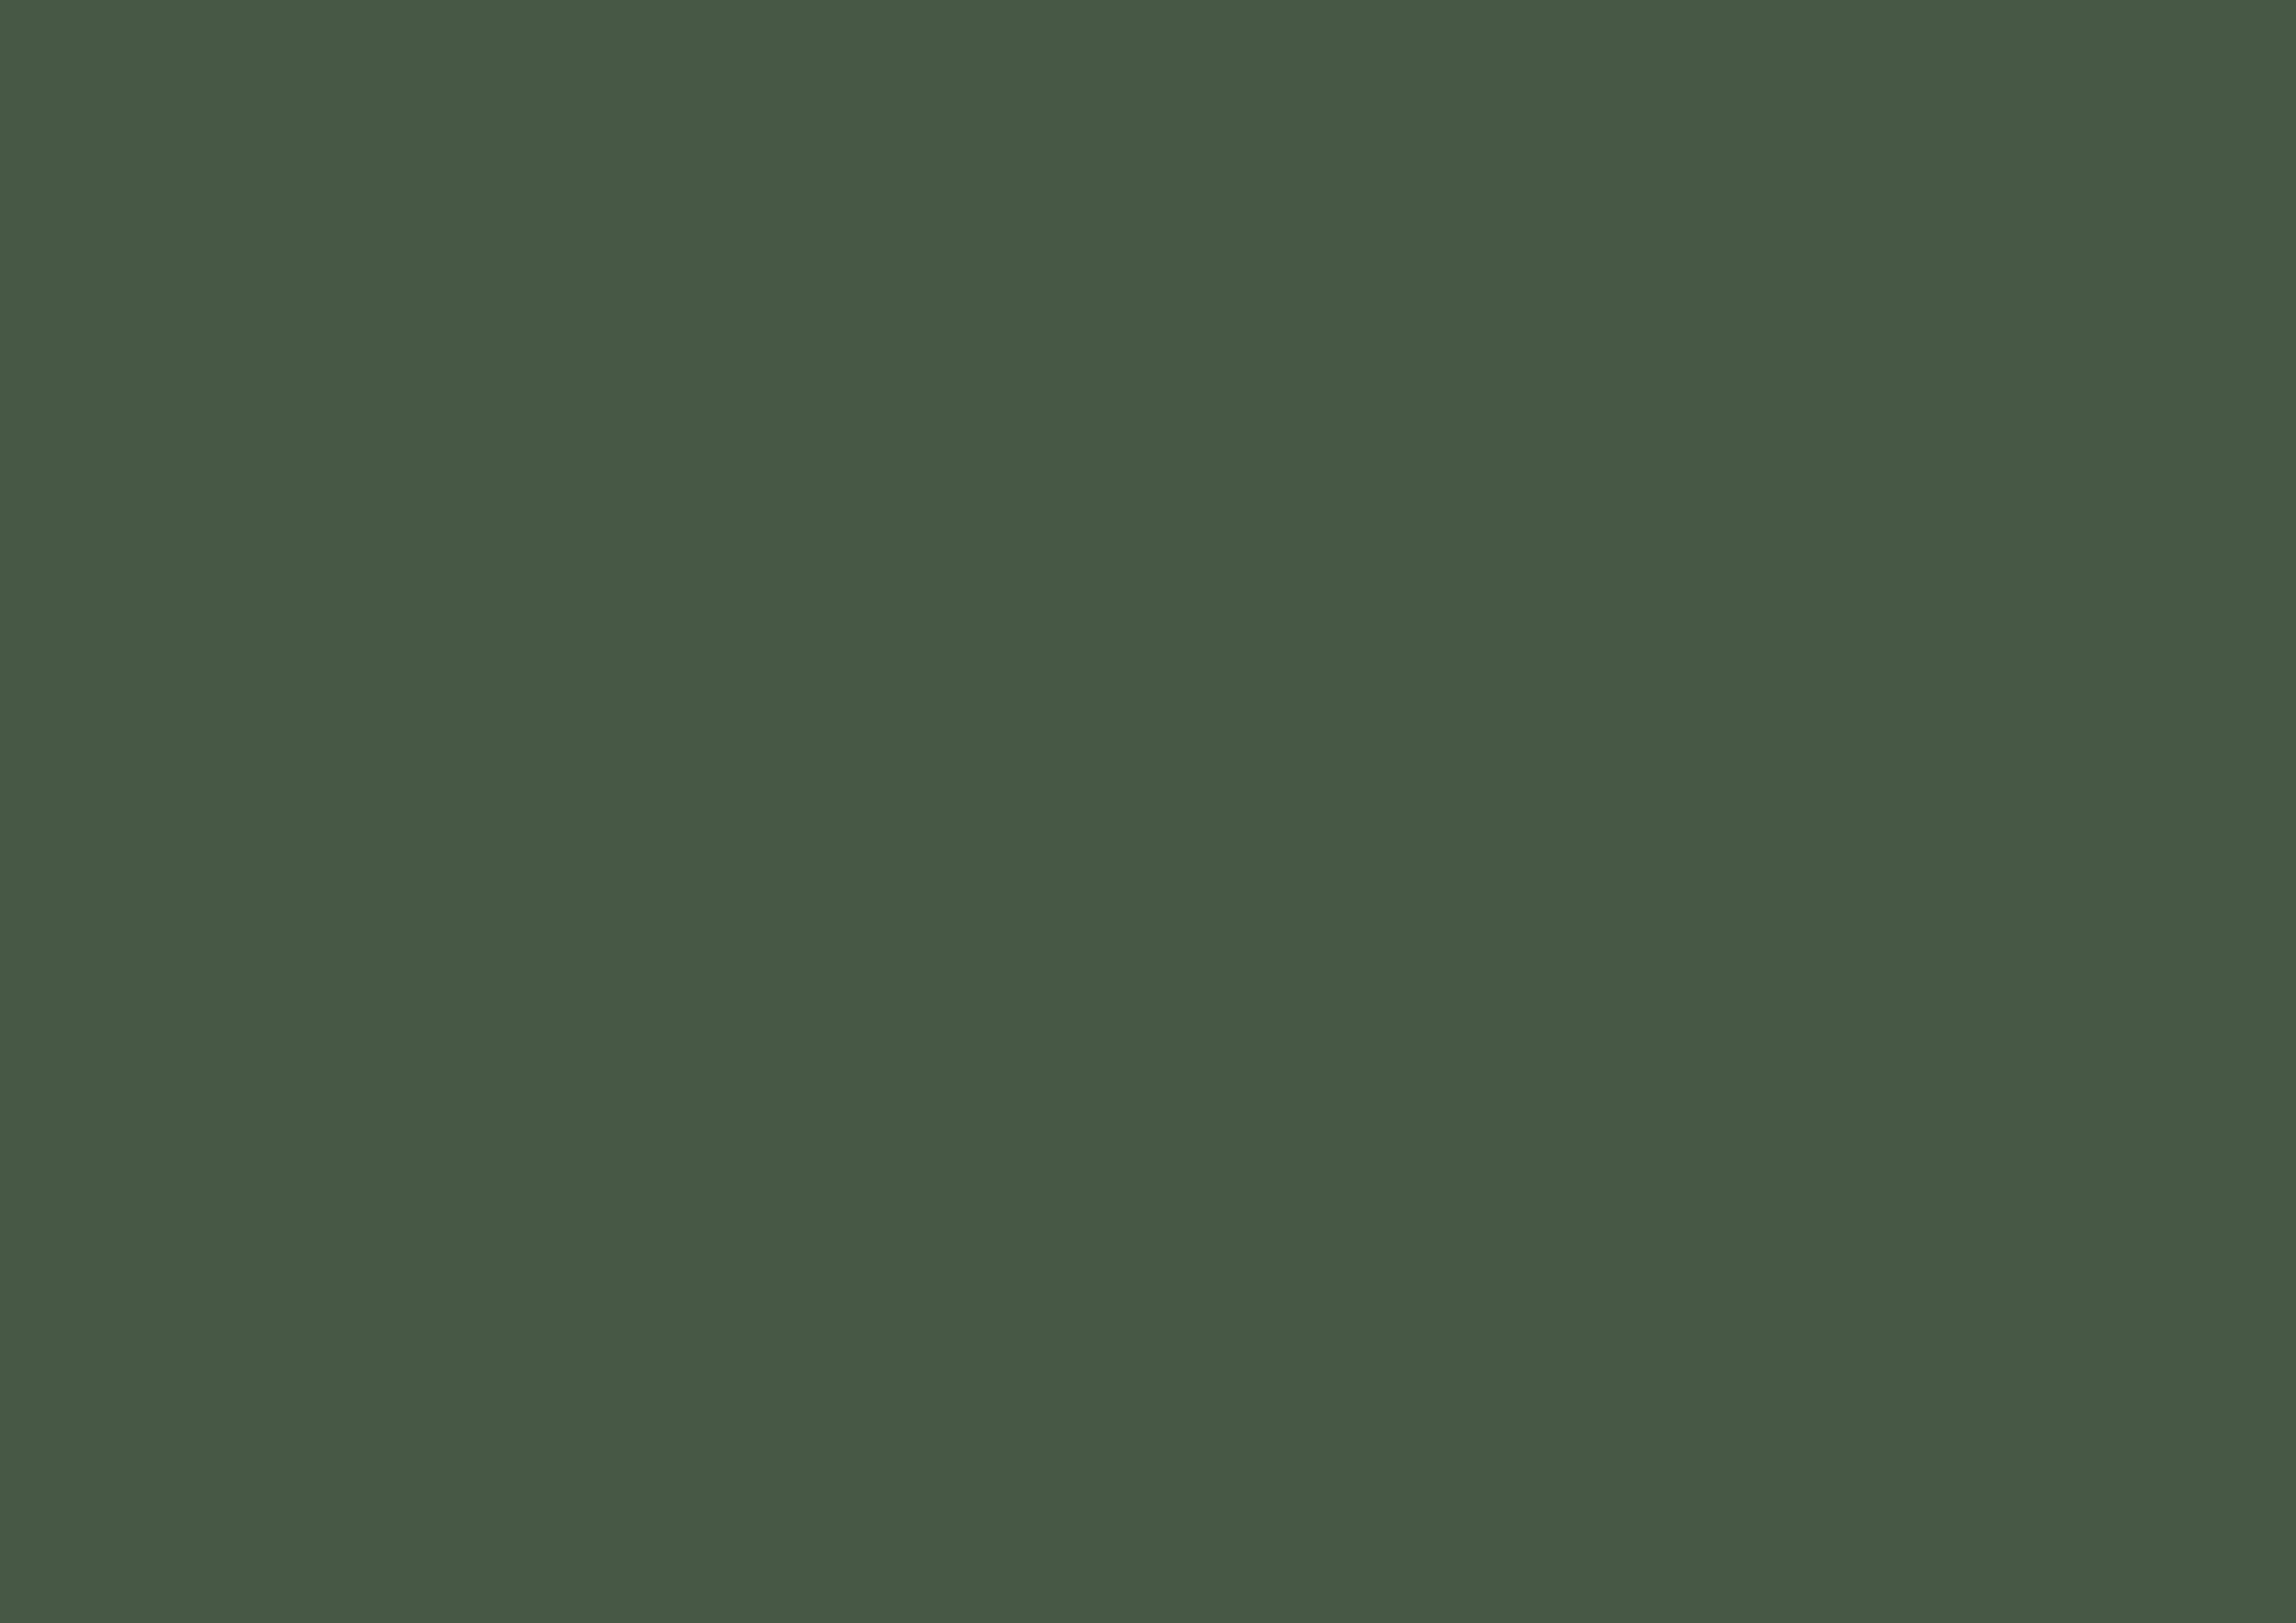 3508x2480 Gray-asparagus Solid Color Background